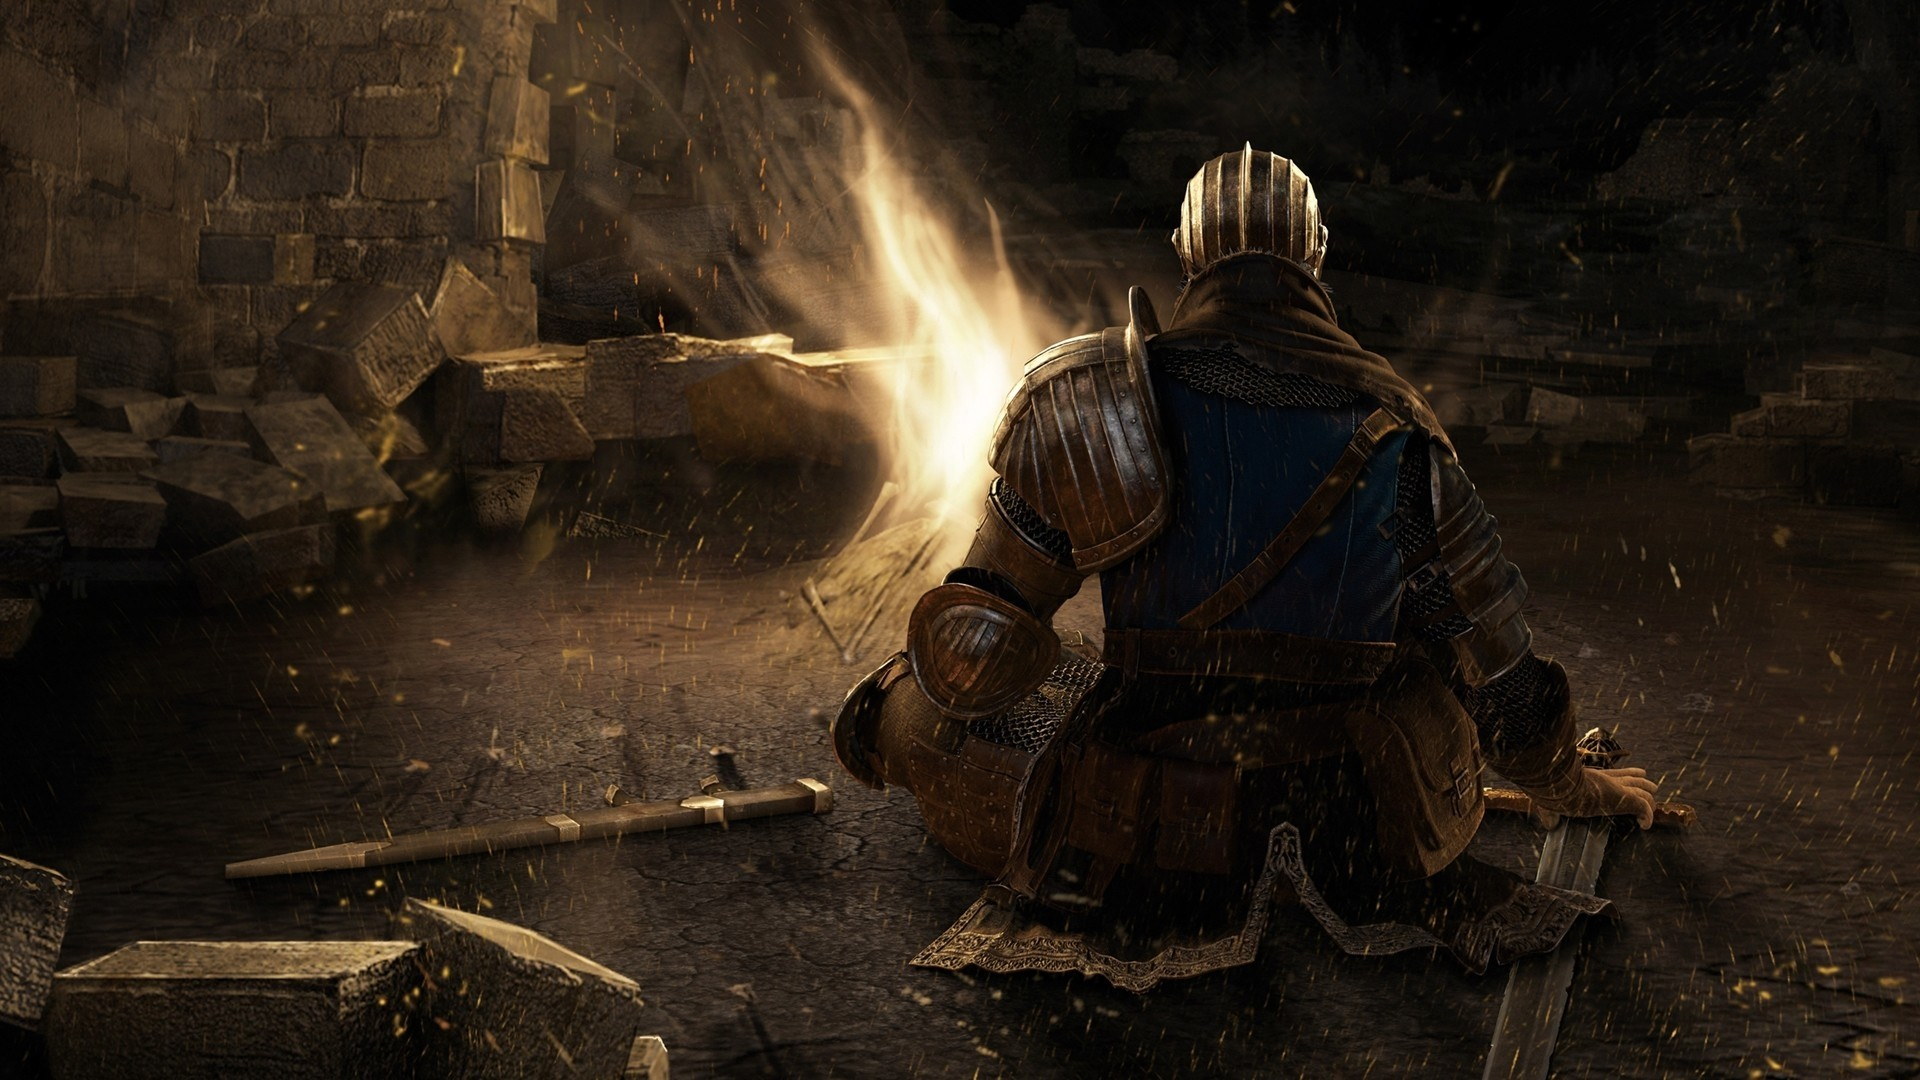 1920x1080 Dark Souls Bonfire Sword Character Relax hd wallpaper by ThorMark